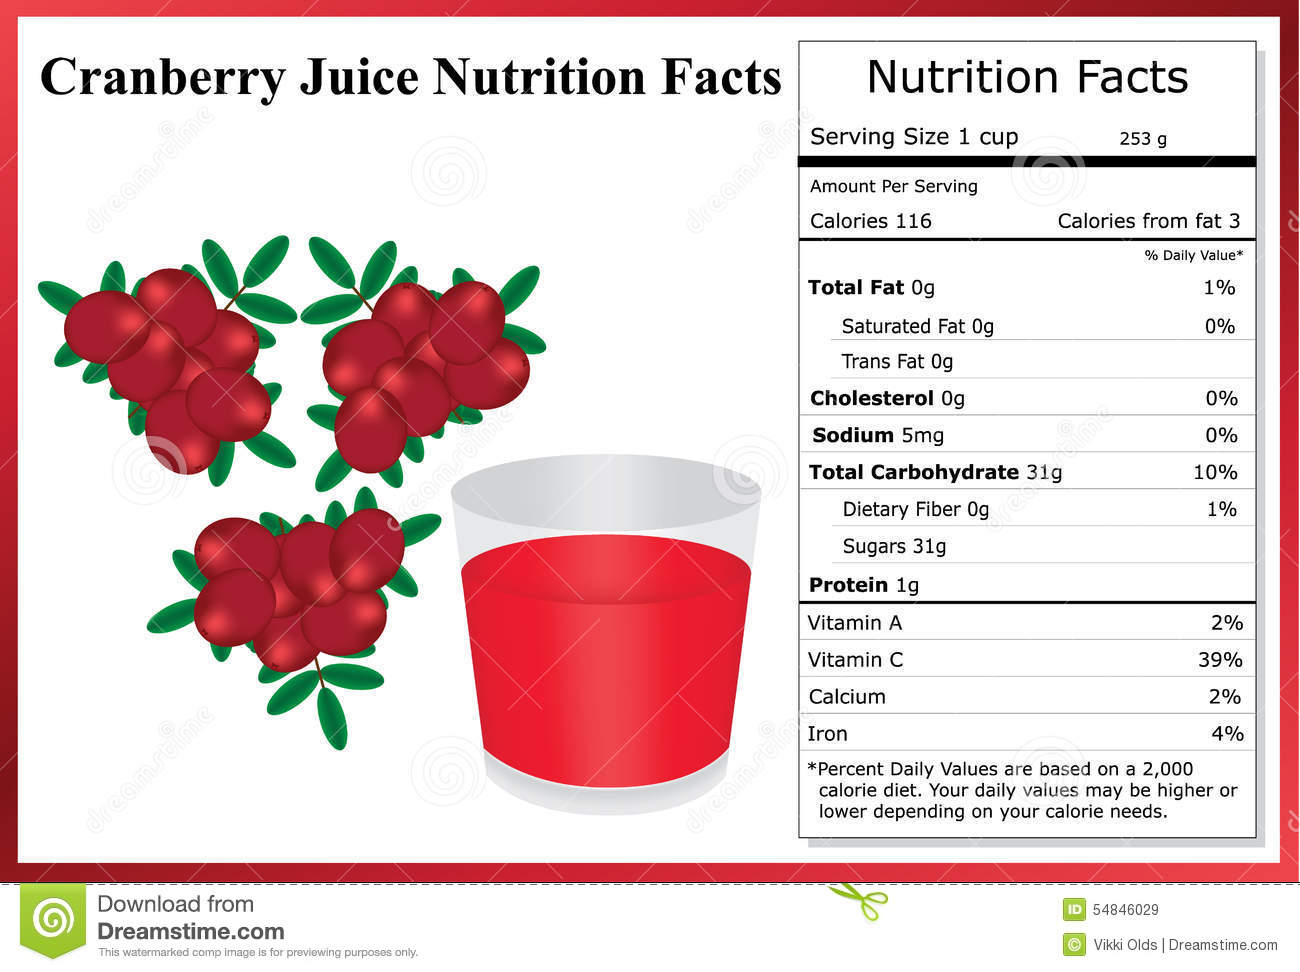 cranberry juice nutrition facts stock vector - illustration of